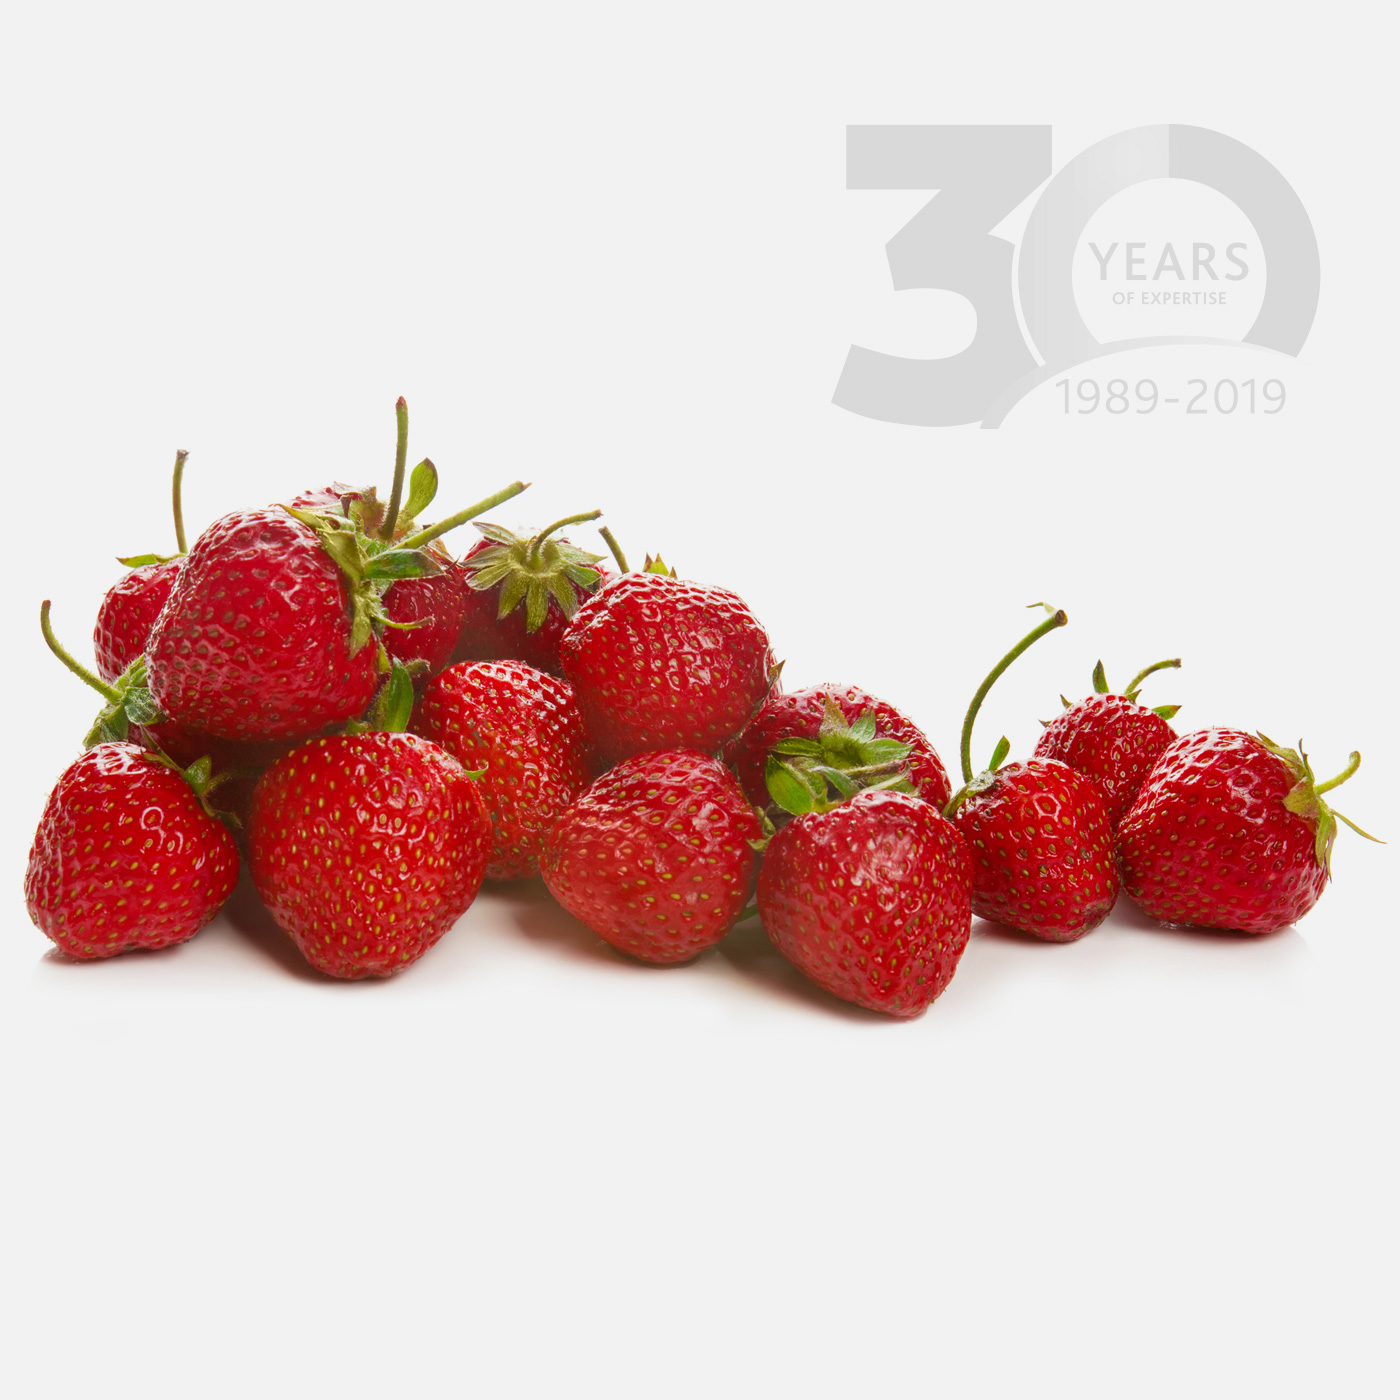 Using strawberries, unlock the possibilities for flavours, aromas and sweeteners in animal feed and pet food production